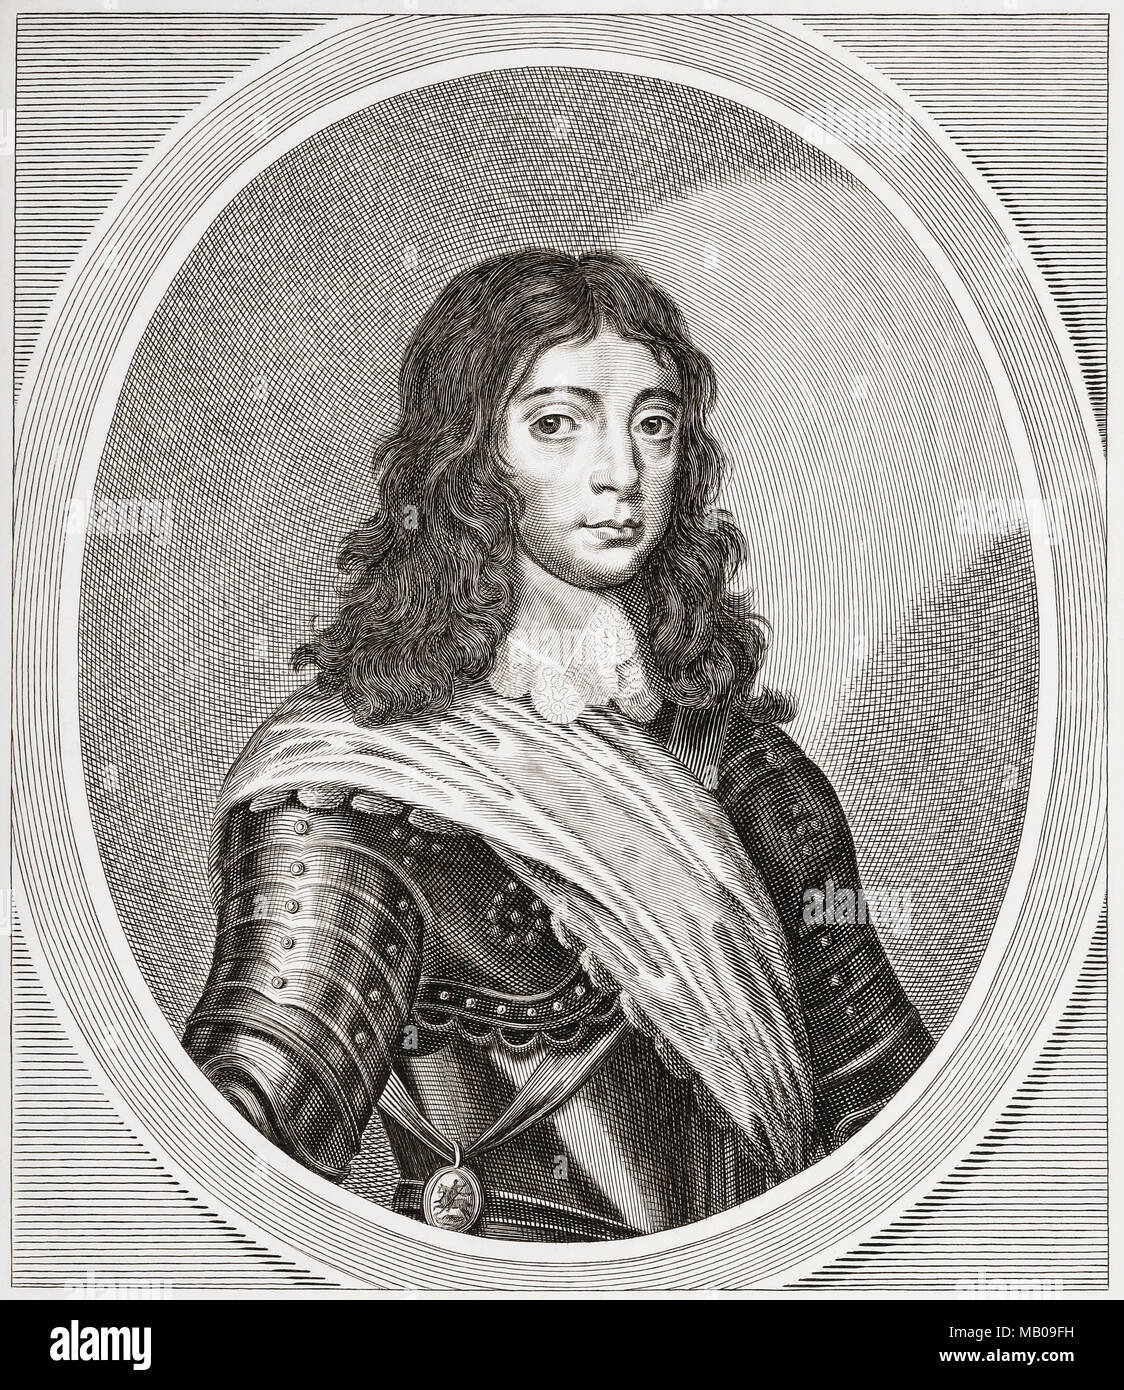 The future King Charles II of England when Prince of Wales, 1630 - 1685.  From Woodburn's Gallery of RarePortraits,  published1816. - Stock Image